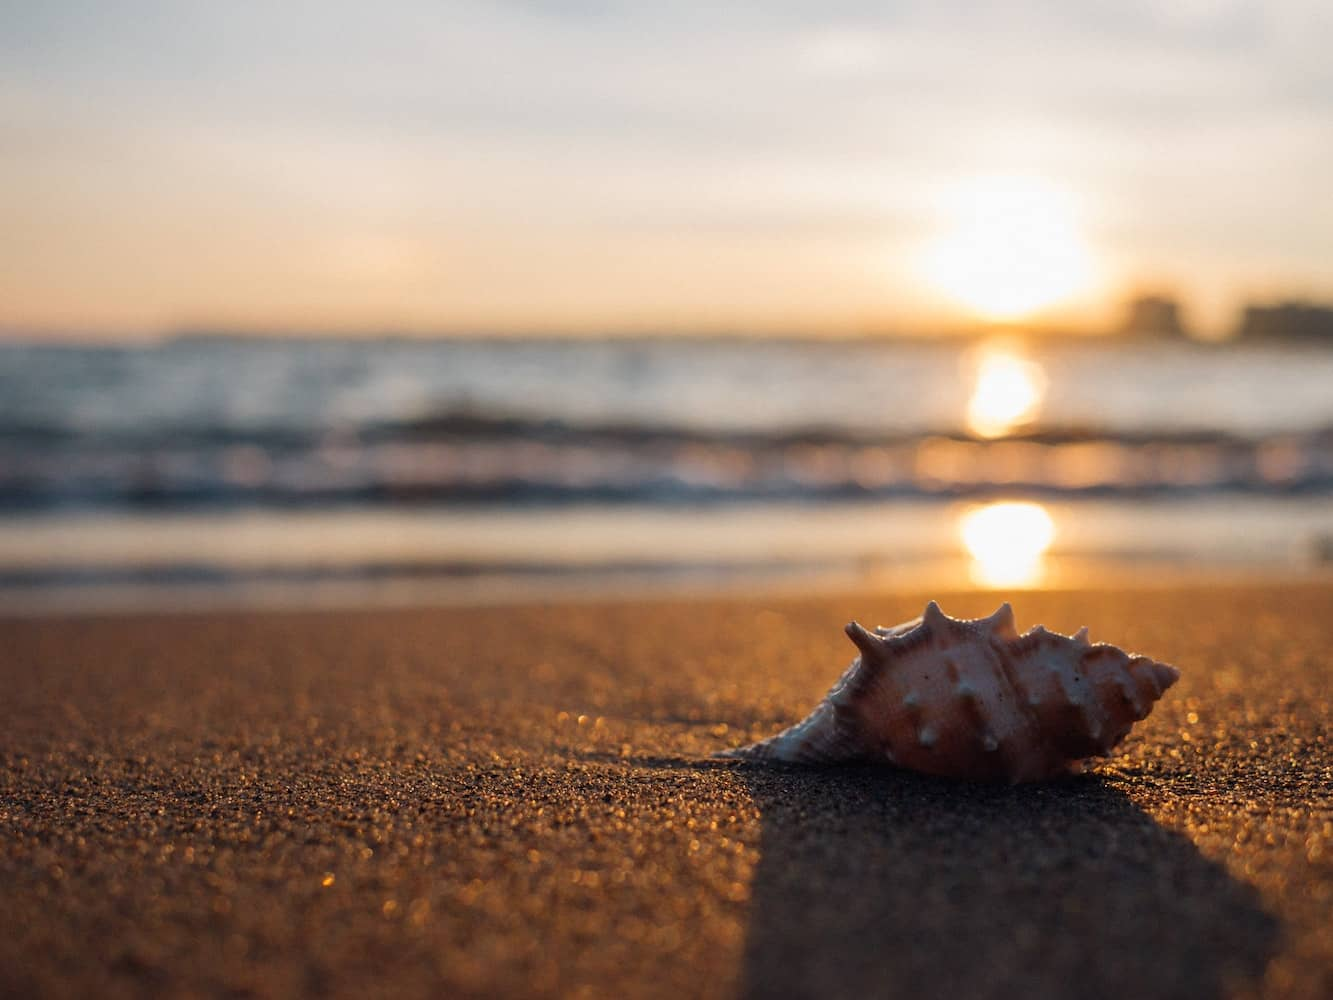 Select a focal point, like a shell or beach chair, when improving your beach photography